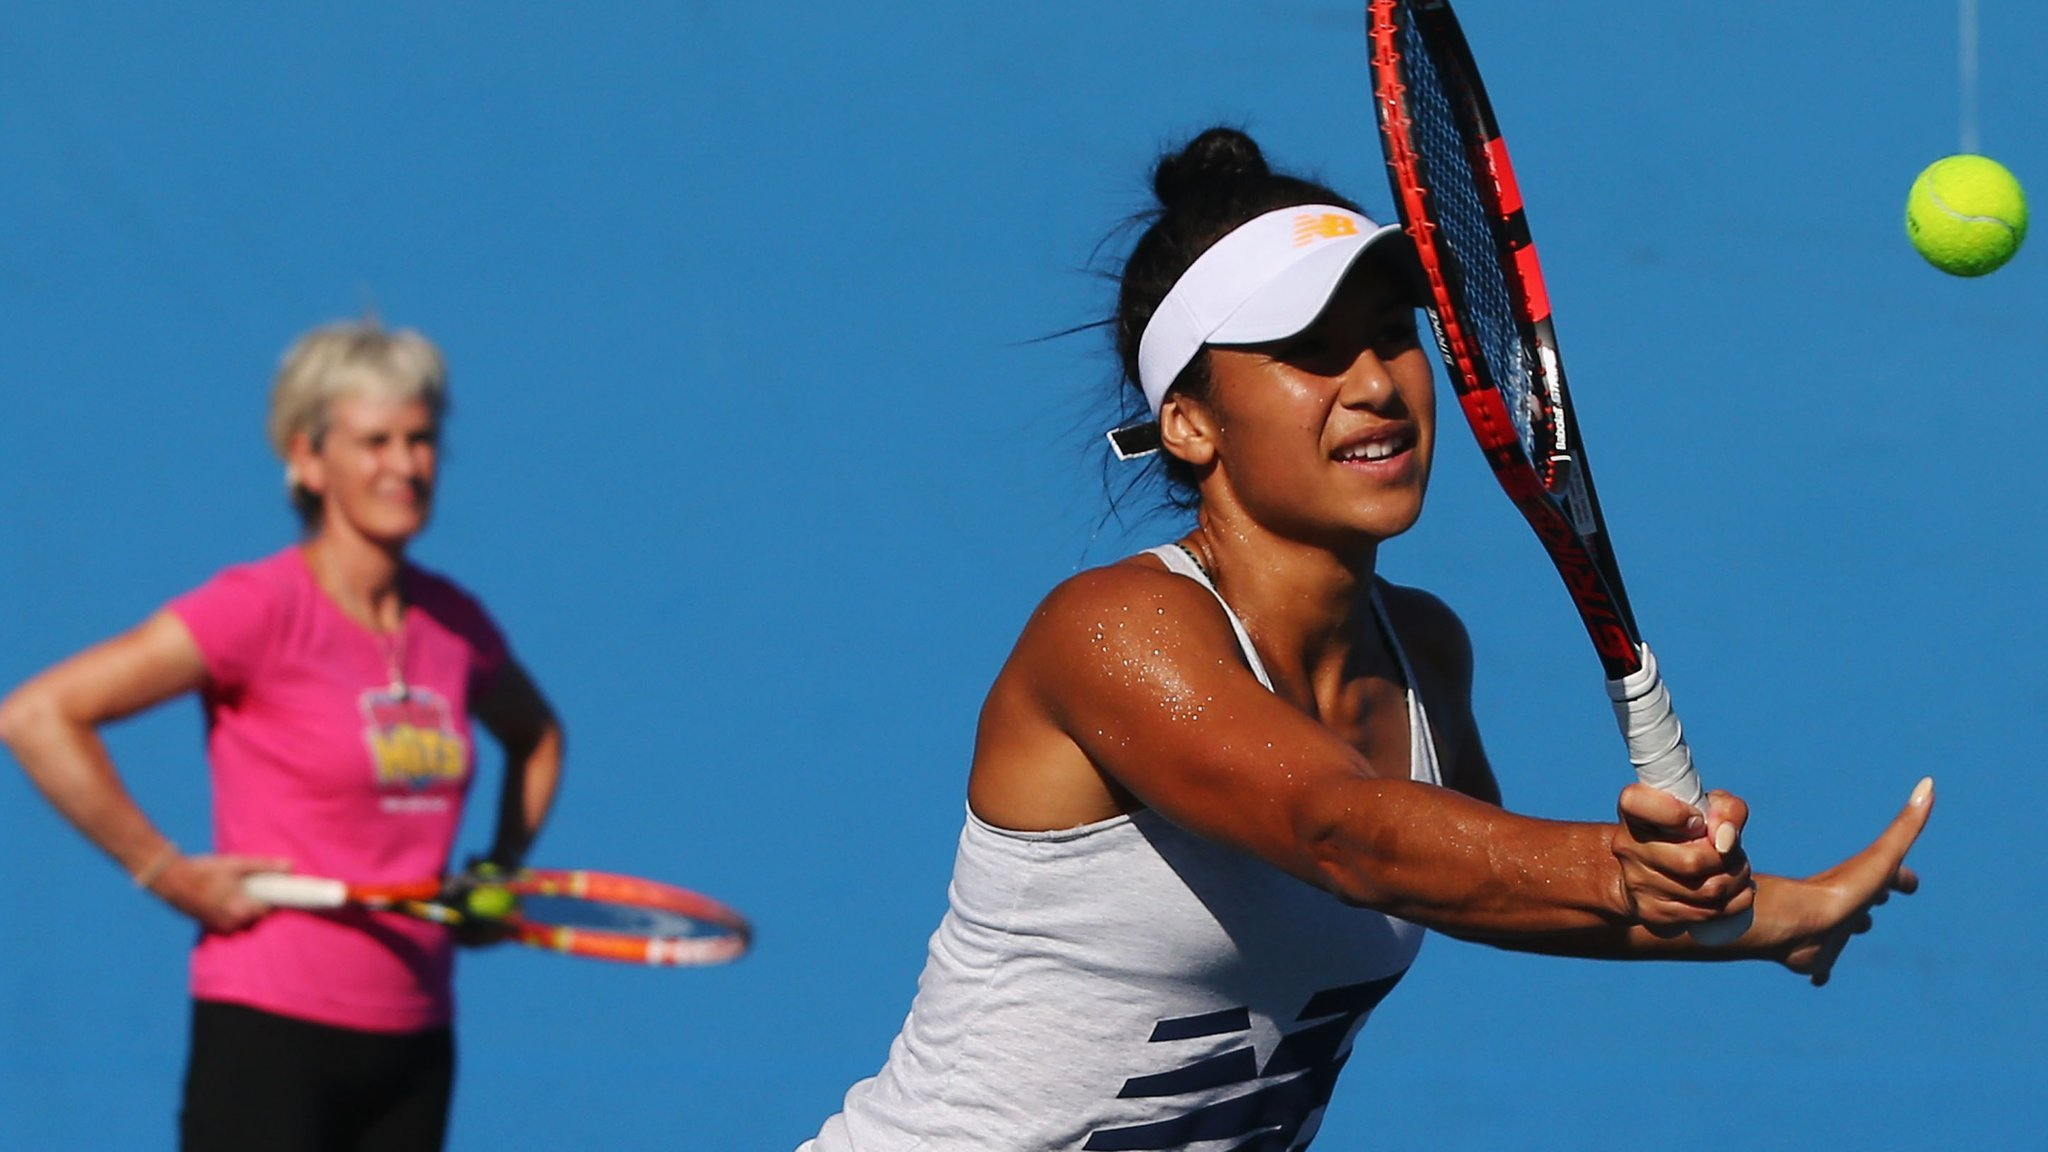 Lawn Tennis Association wants to double number of British female coaches